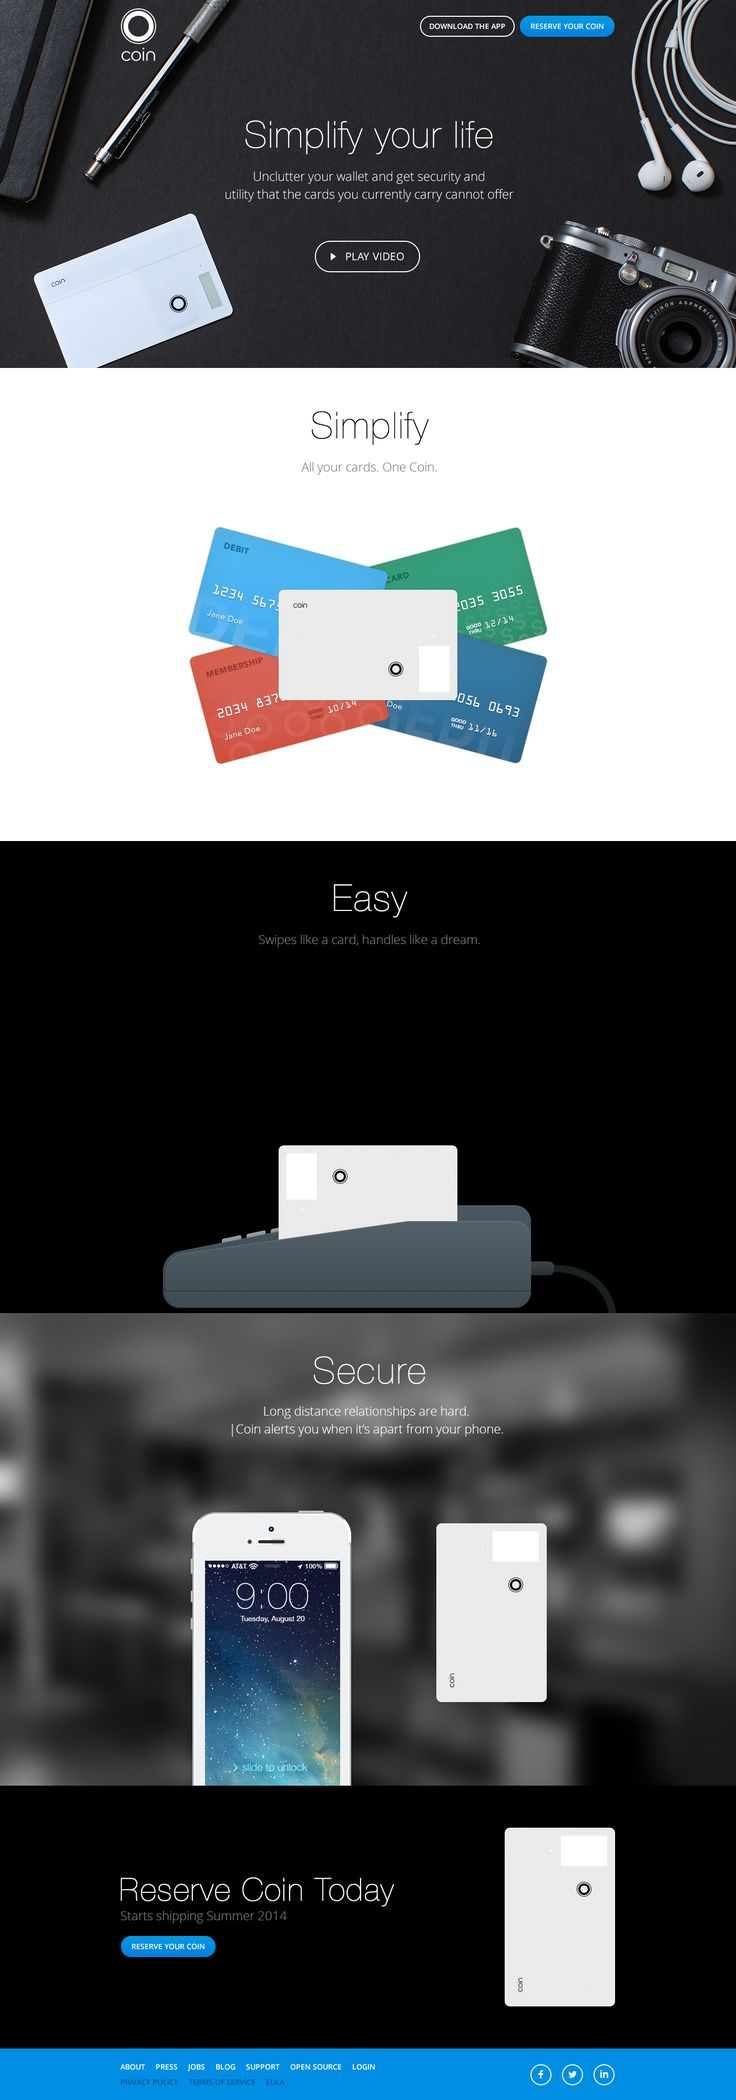 Watch this video, this may be the coolest thing ever. I bet it will be super expensive though. And I'm curious how it protects your card from being put onto someone else's account?